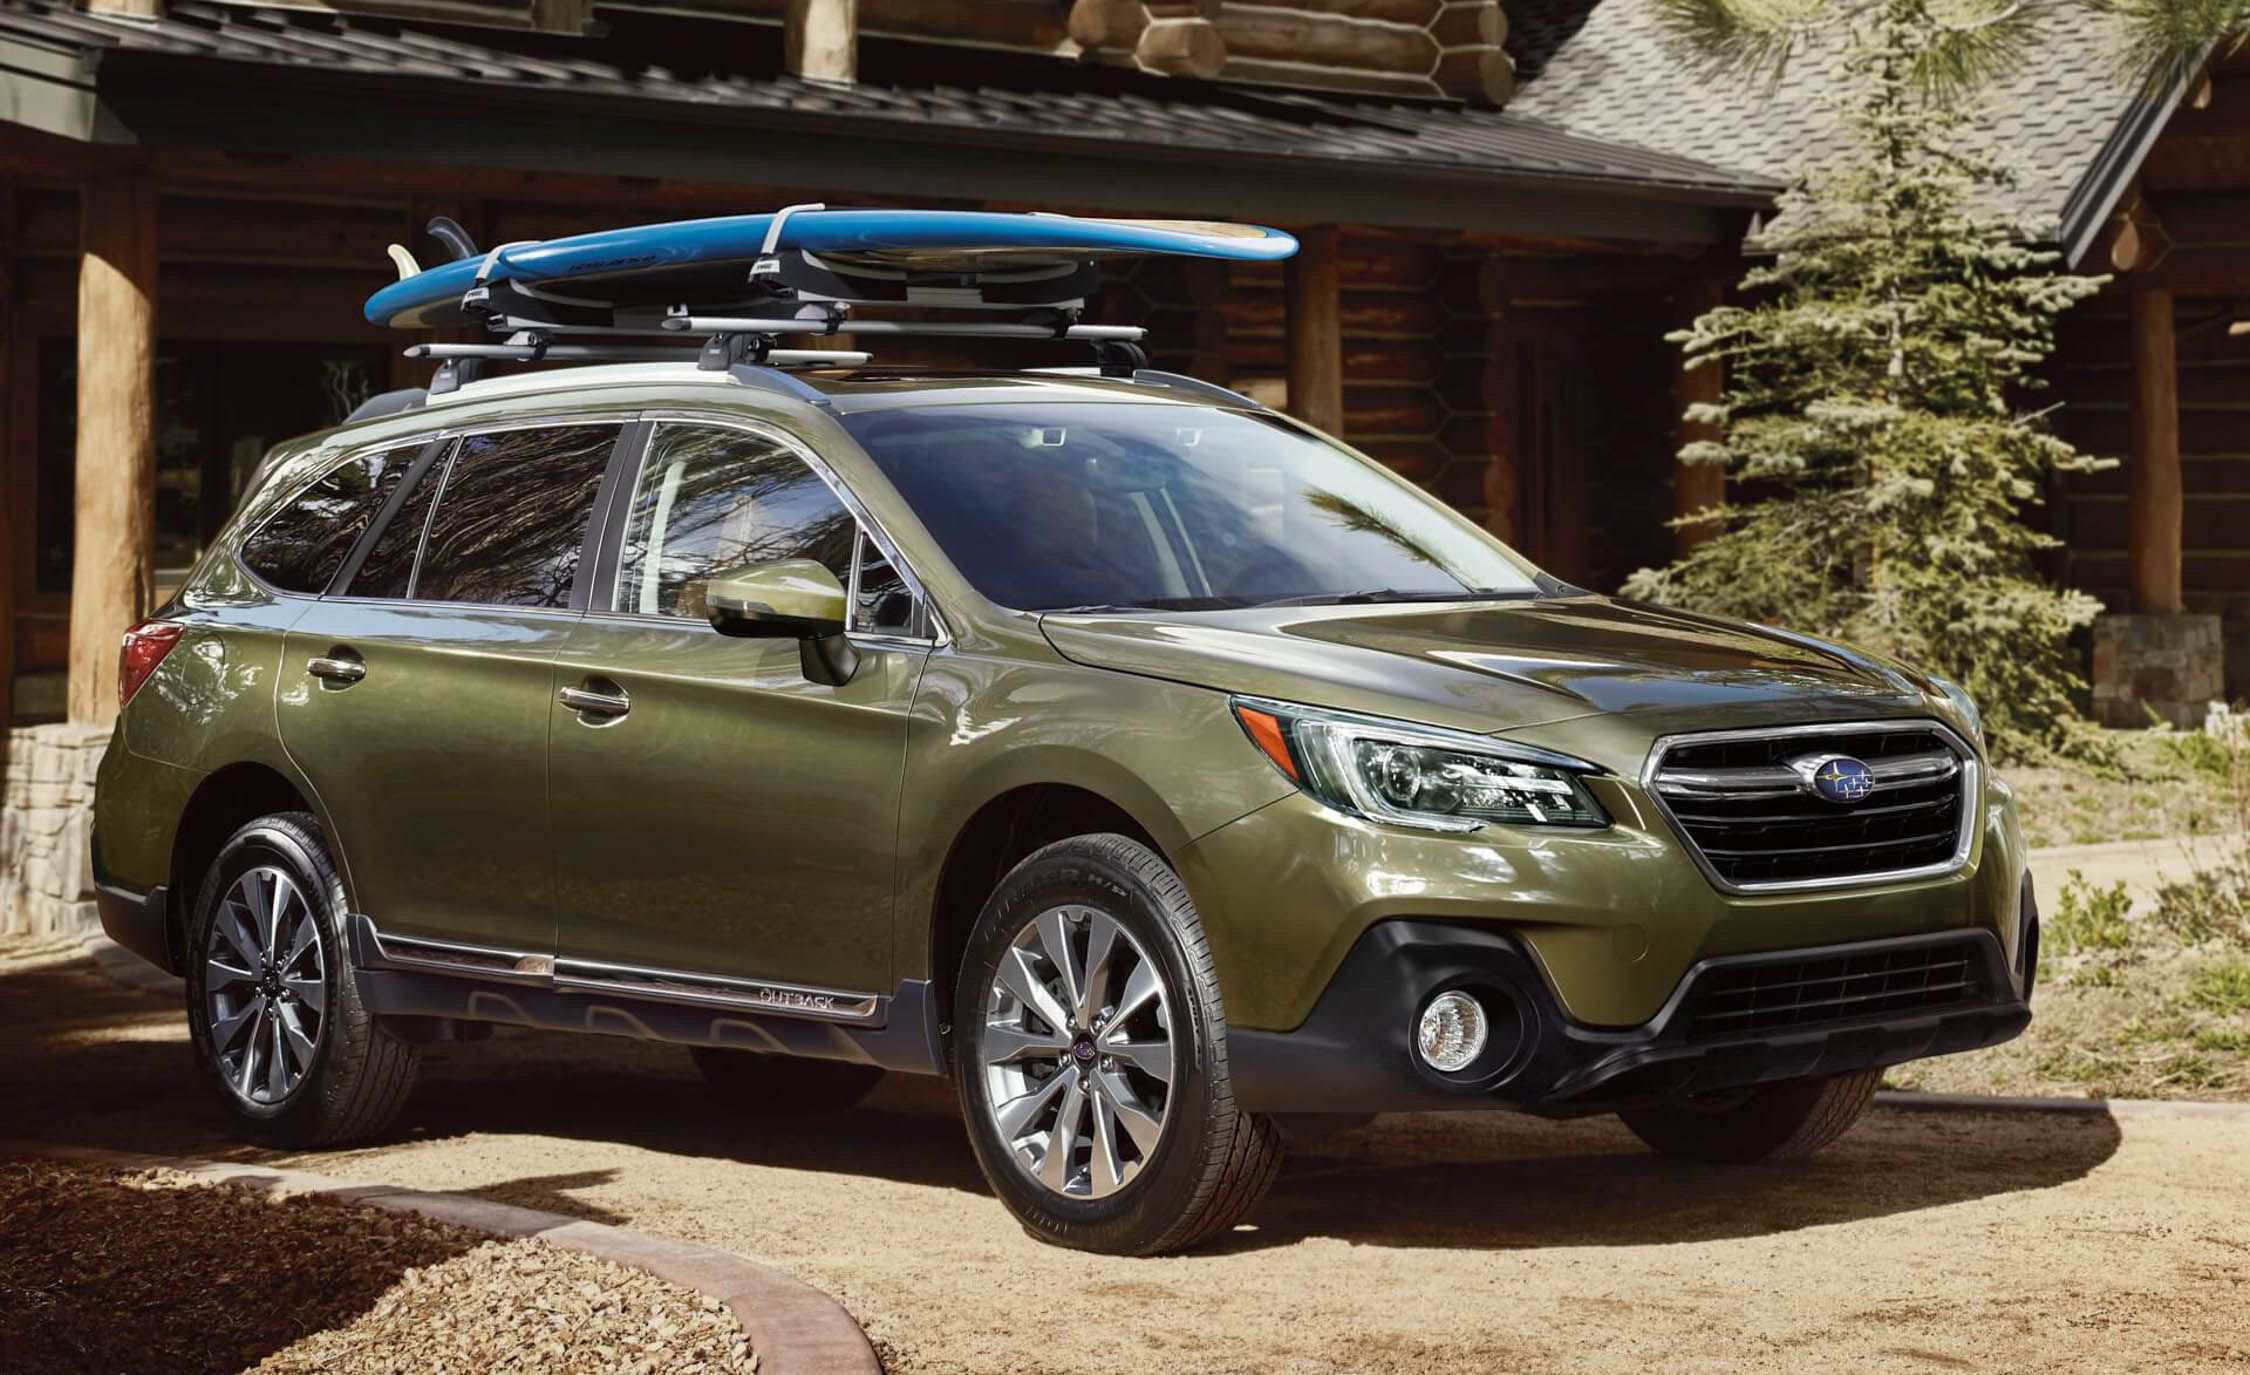 69 Gallery of 2019 Subaru Outback Redesign Review by 2019 Subaru Outback Redesign